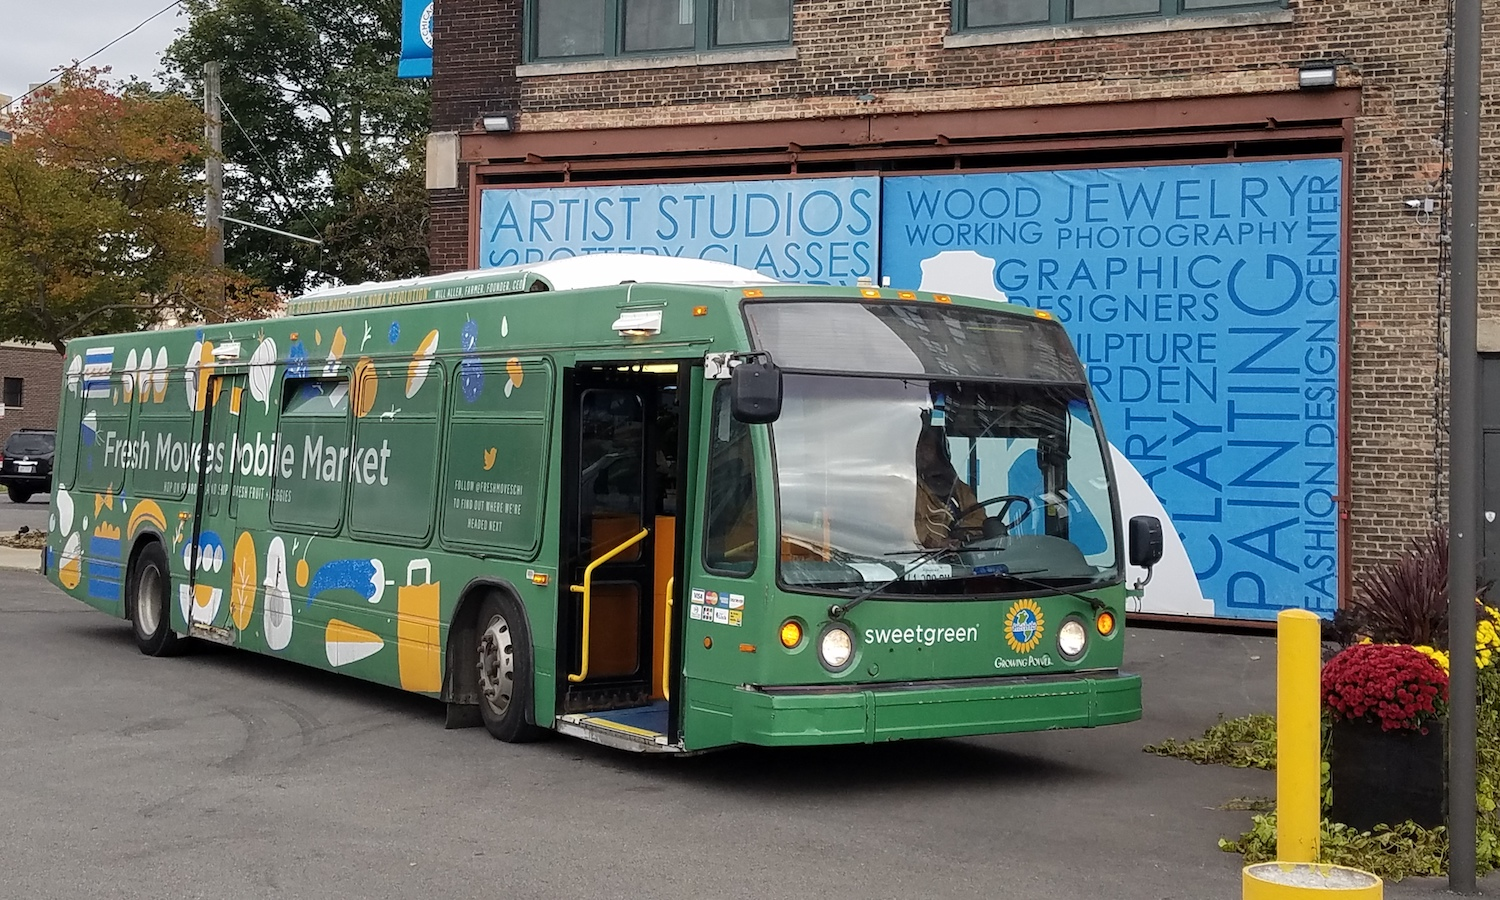 A Chicago nonprofit sells fresh fruits and vegetables from renovated buses to counteract the lack of full-service grocery stores in local neighborhoods. Well-priced and largely organic, the fresh produce can improve food flavor and nutrition.